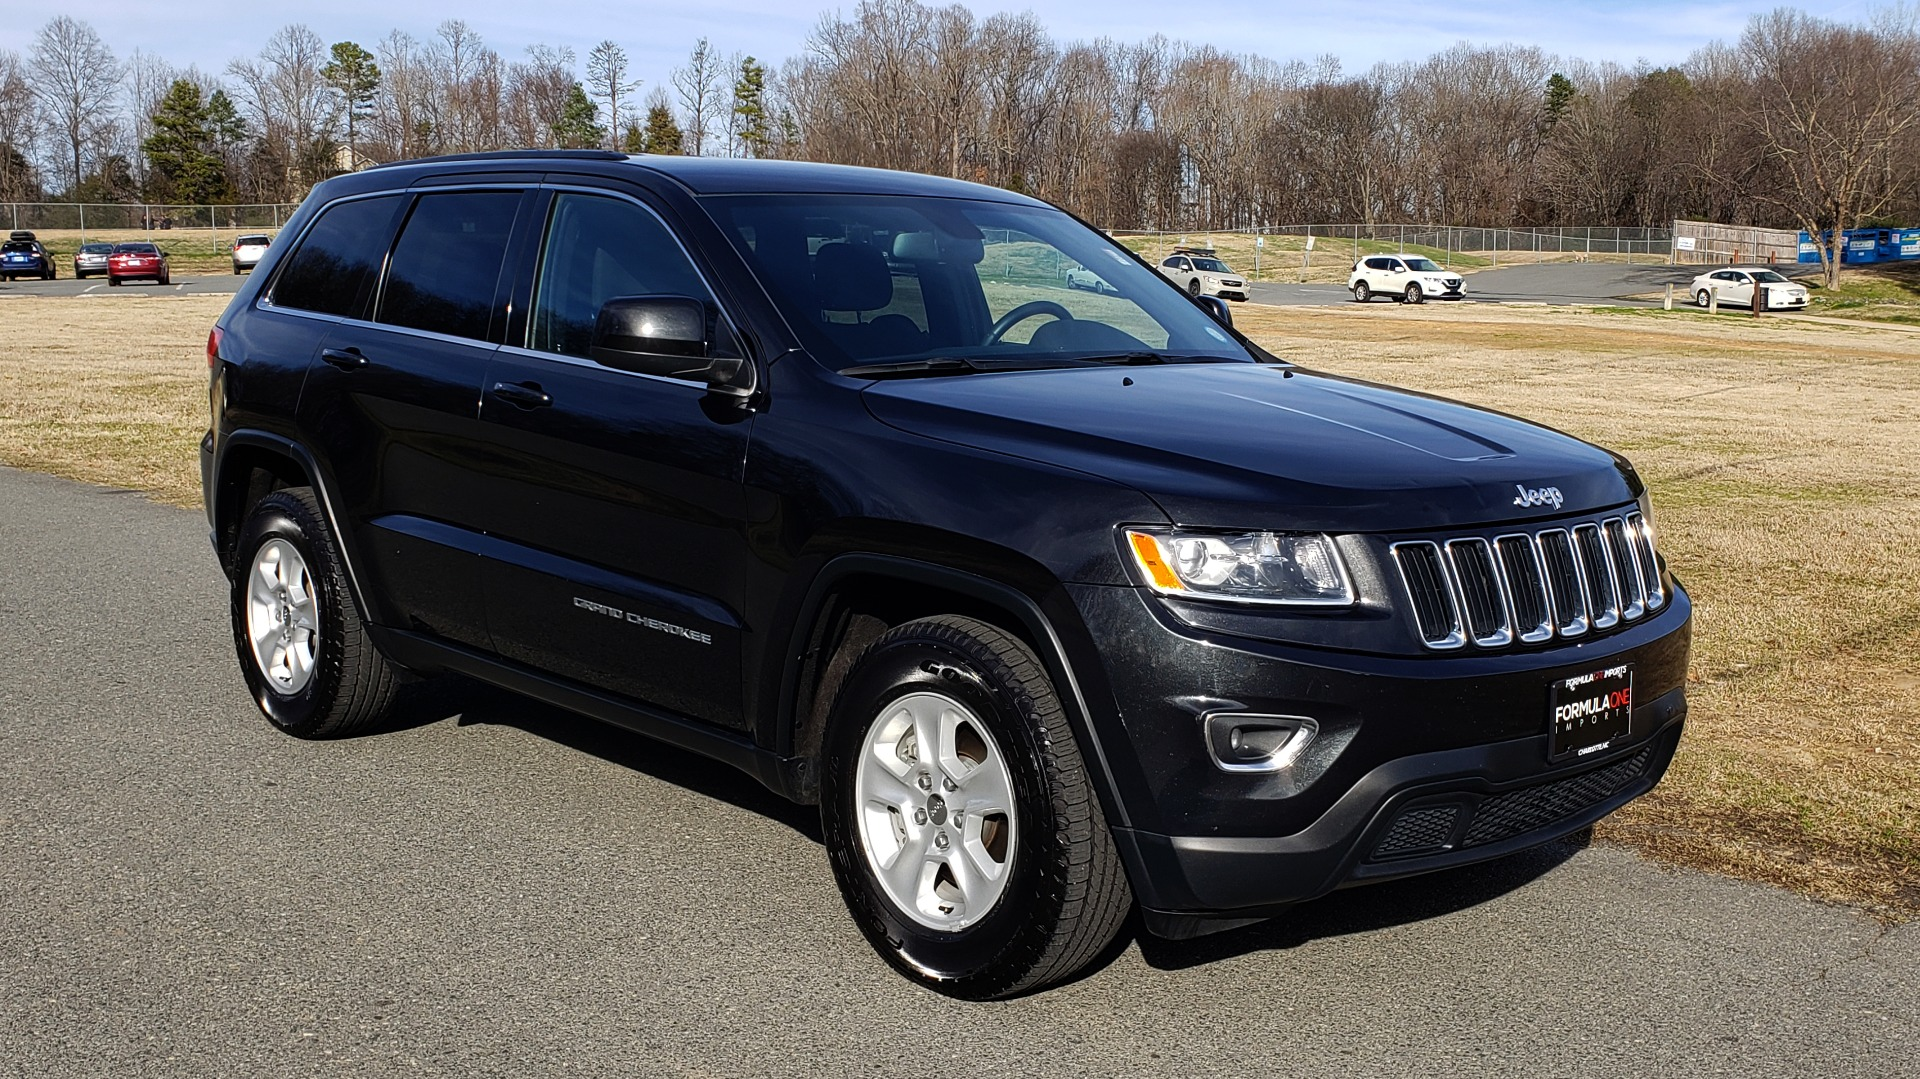 Used 2015 Jeep GRAND CHEROKEE LAREDO / 4X2 / 3.6L V6 / AUTO / 17IN WHEELS for sale Sold at Formula Imports in Charlotte NC 28227 4